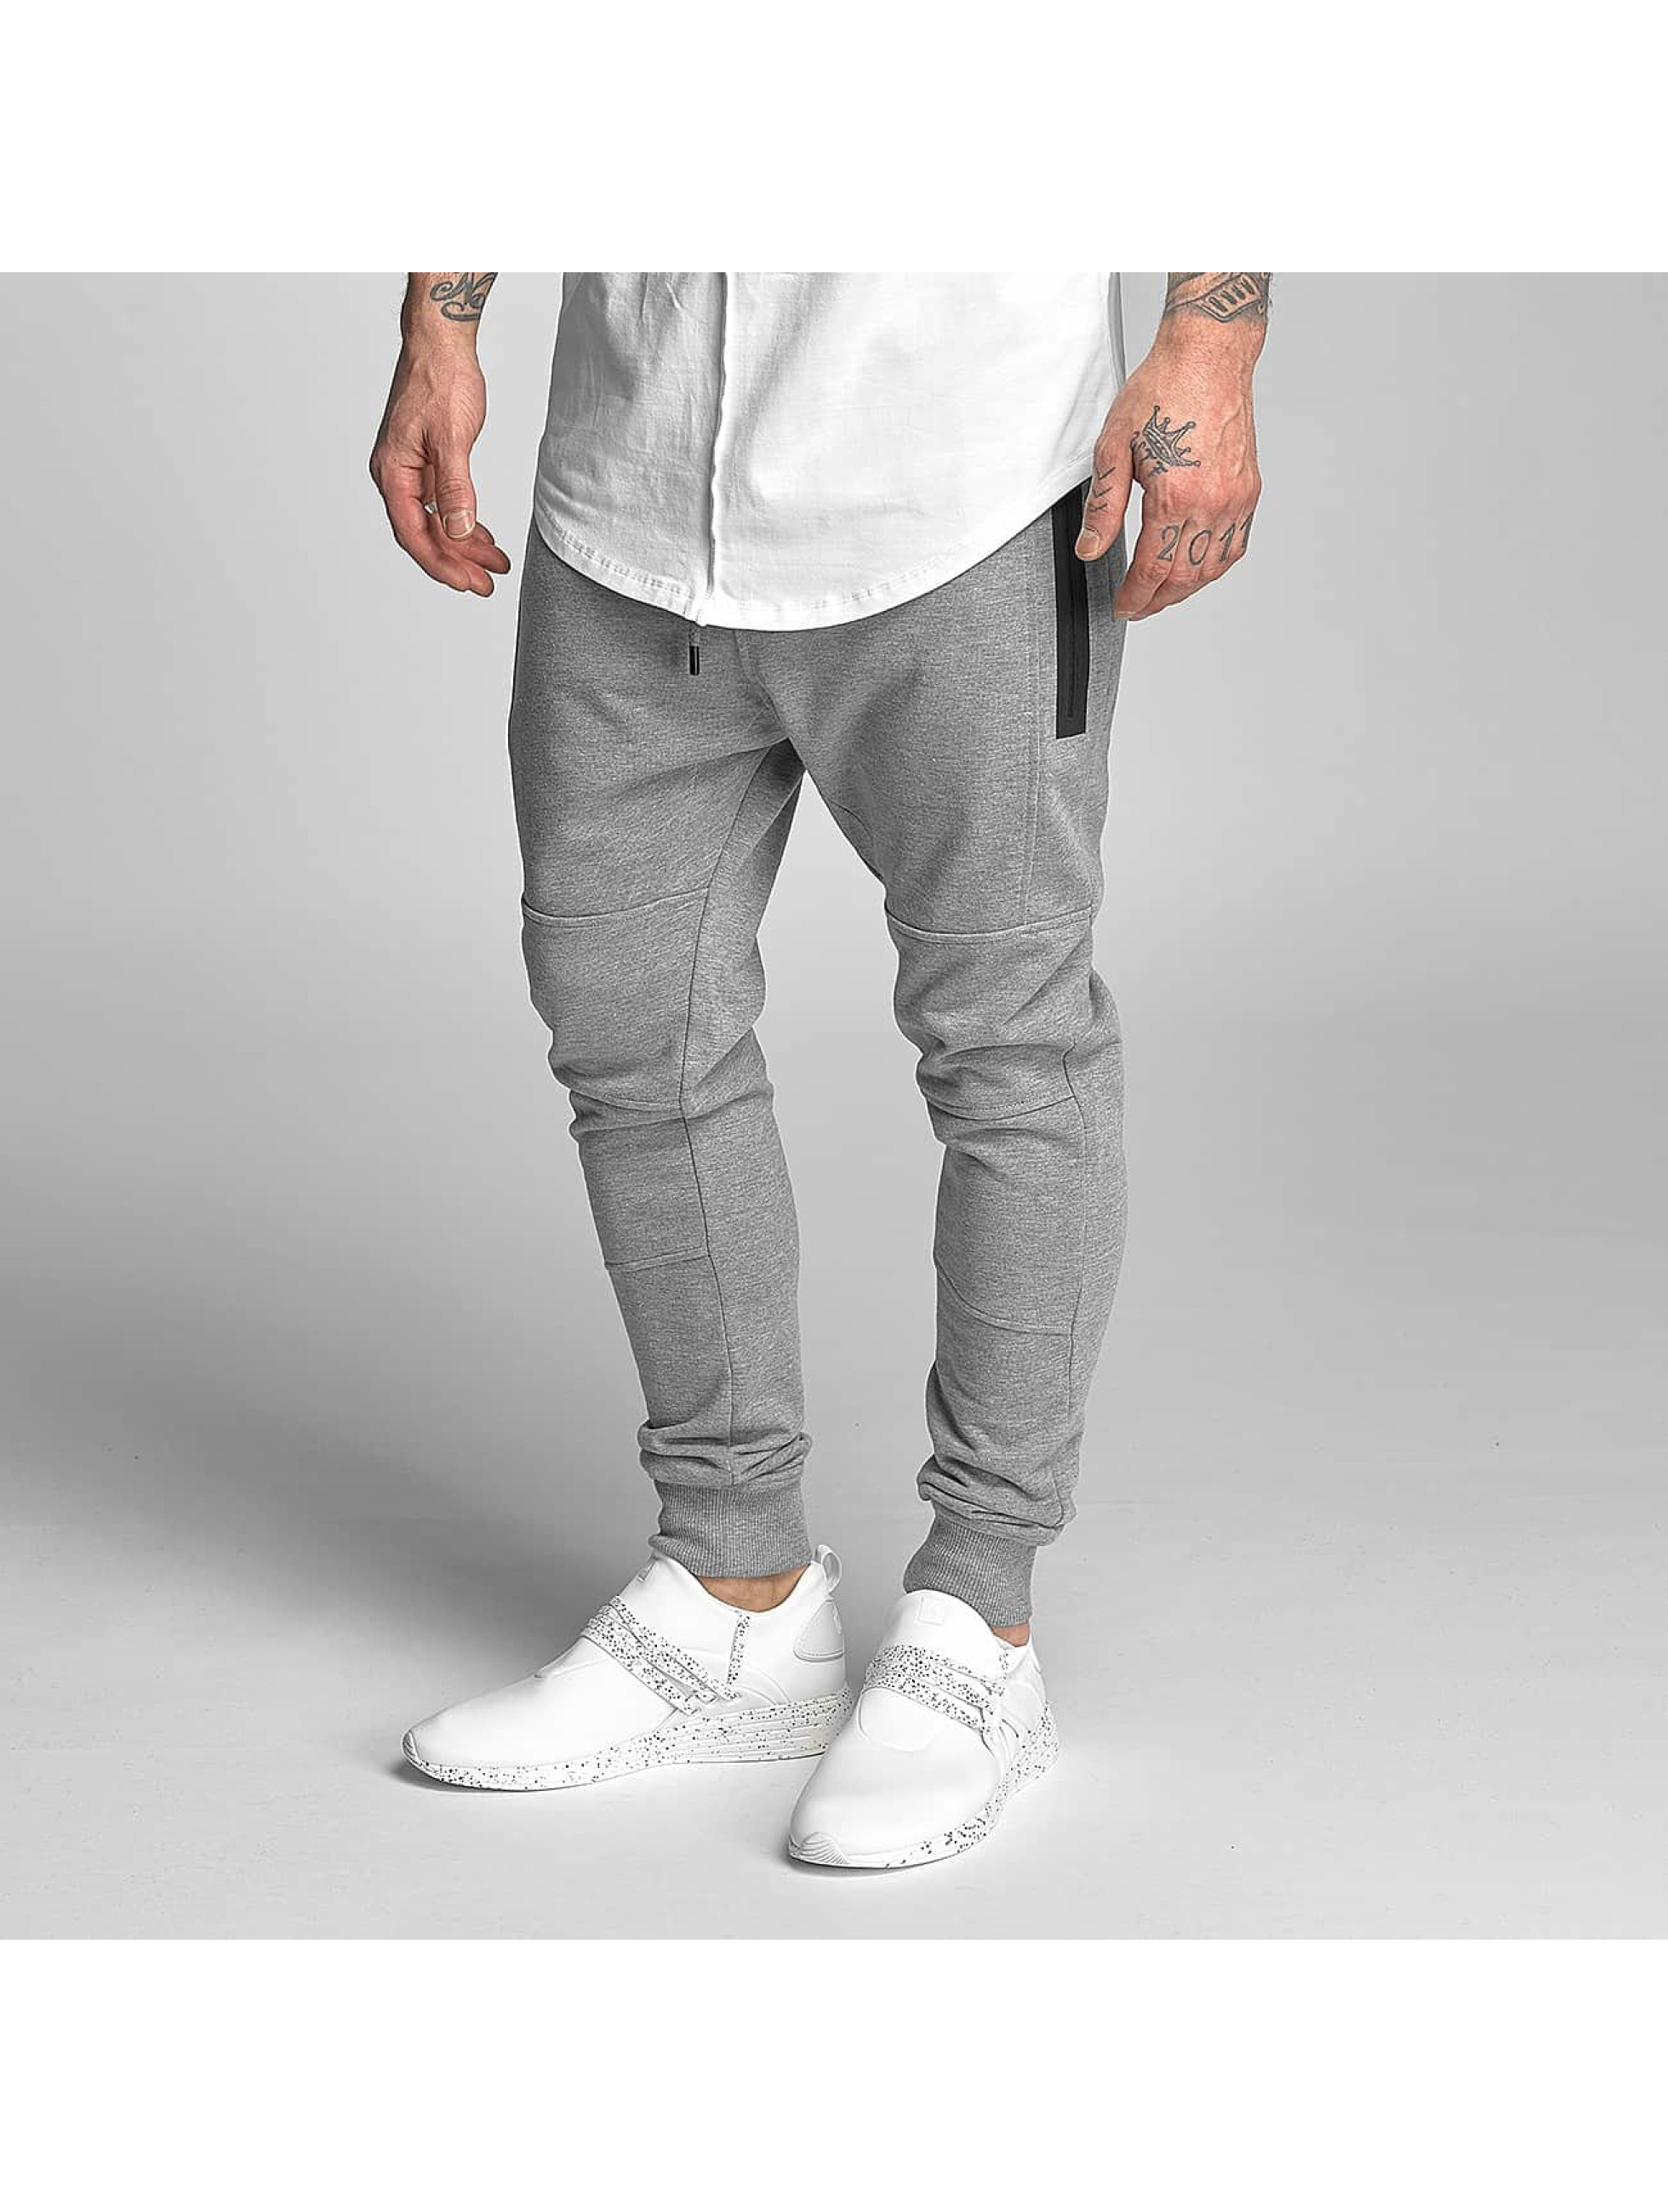 DEF Antifit Sweatpants Grey